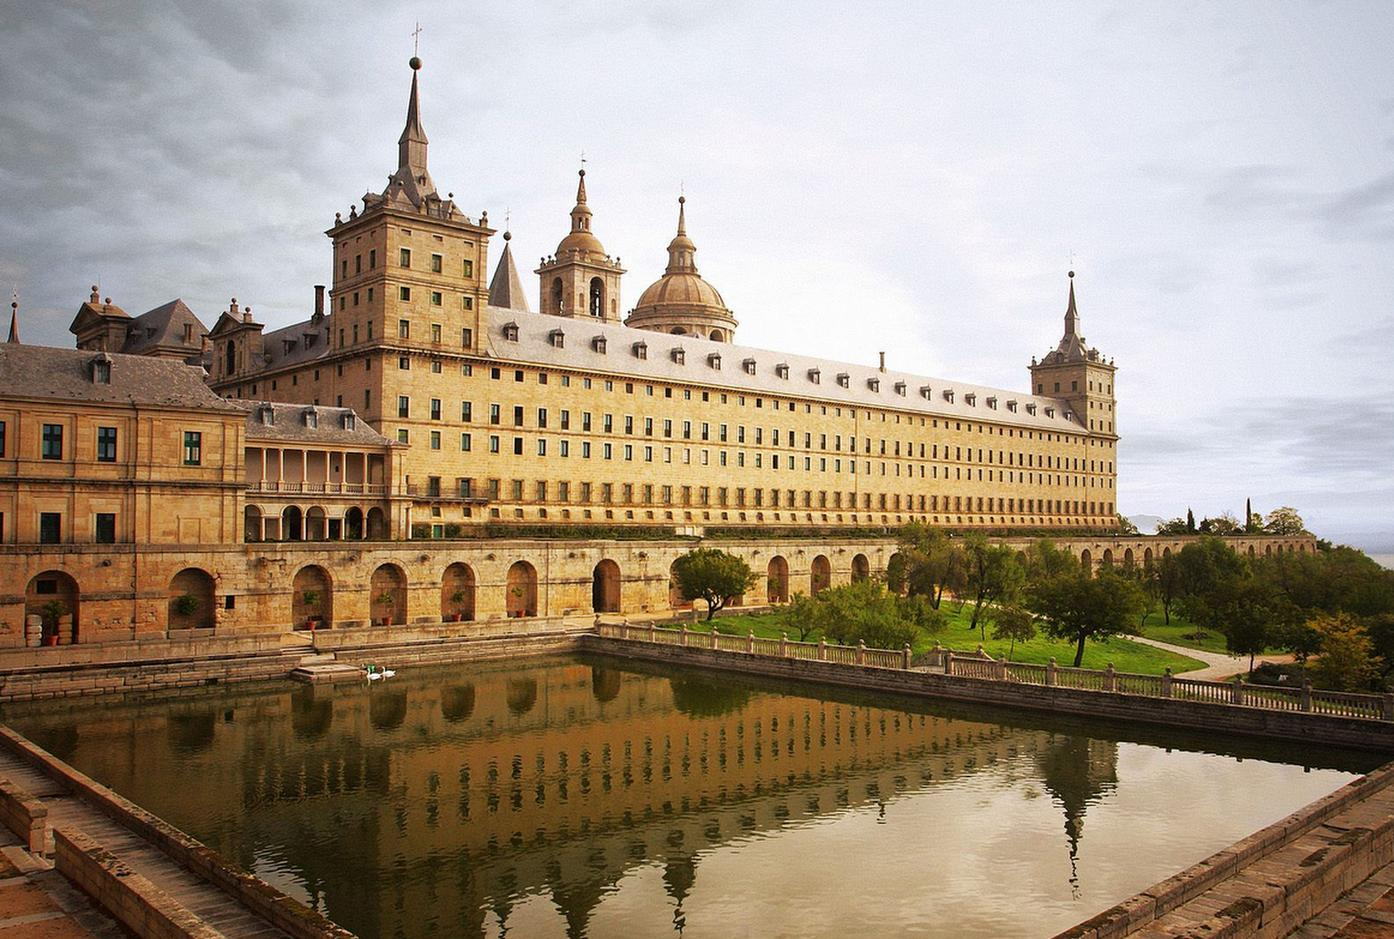 https://upload.wikimedia.org/wikipedia/commons/a/af/Escorial-sur.jpg